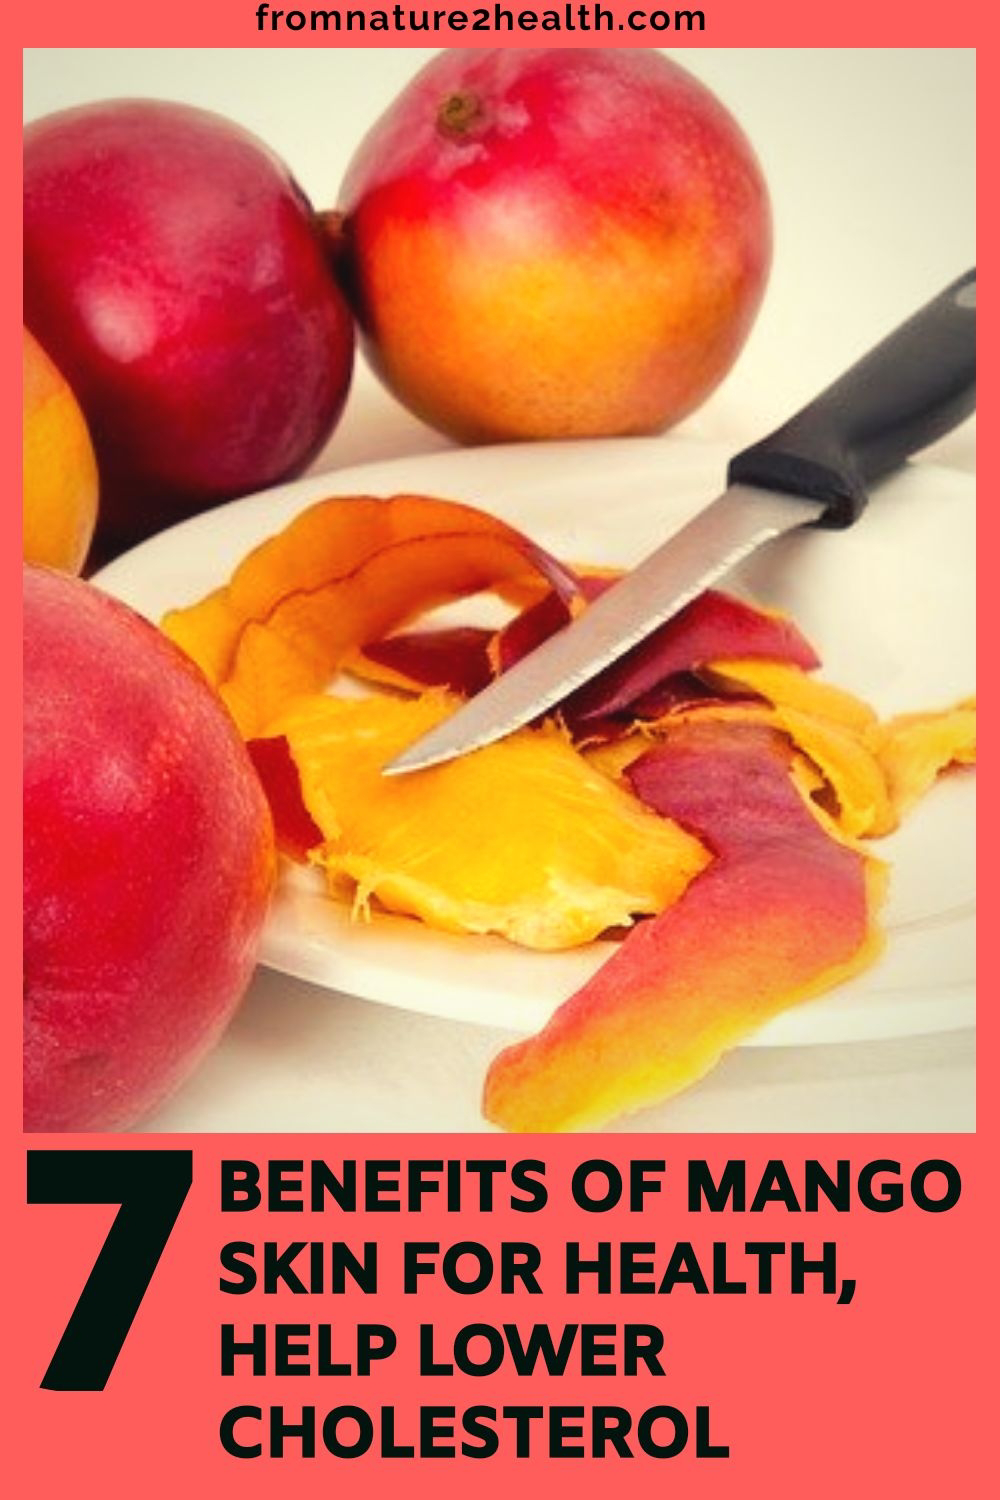 7 Benefits of Mango Skin for Anemia, Cancer, Cholesterol, Diabetes, Hair, Heart Disease